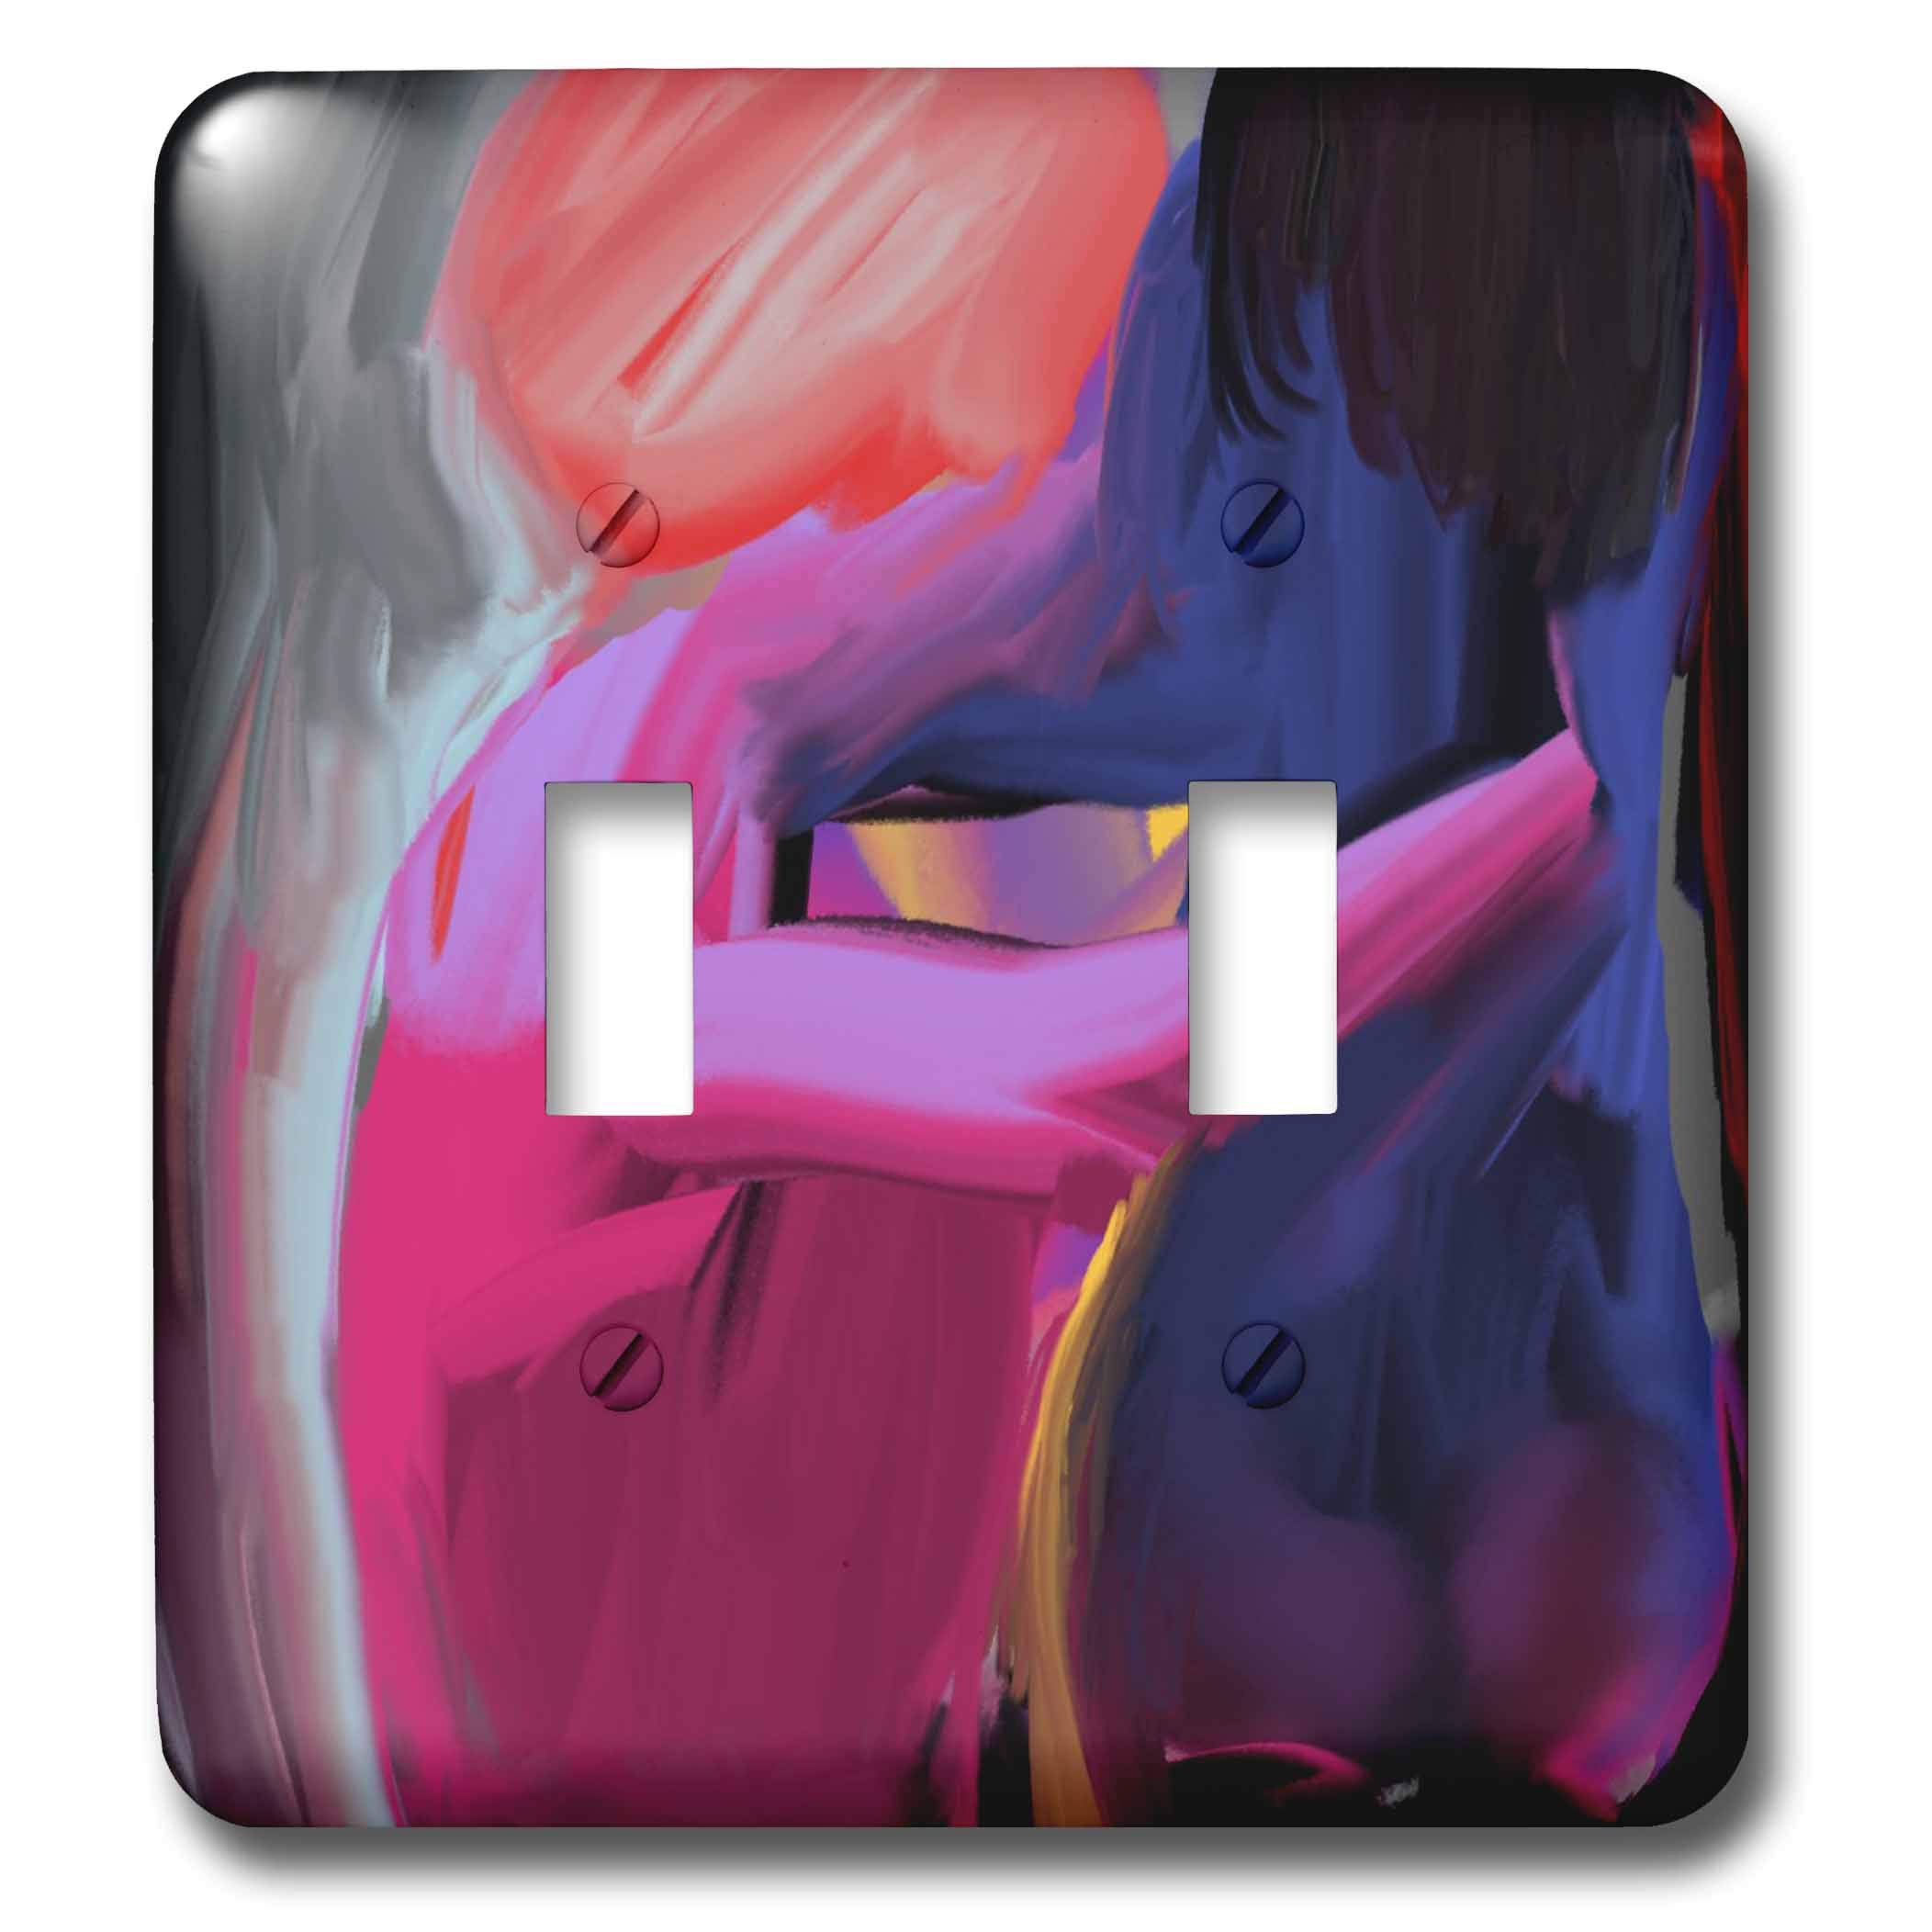 3dRose Lasha Beraia - Sensual - Woman and Man: Intimate Scene - Light Switch Covers - double toggle switch (lsp_288668_2)